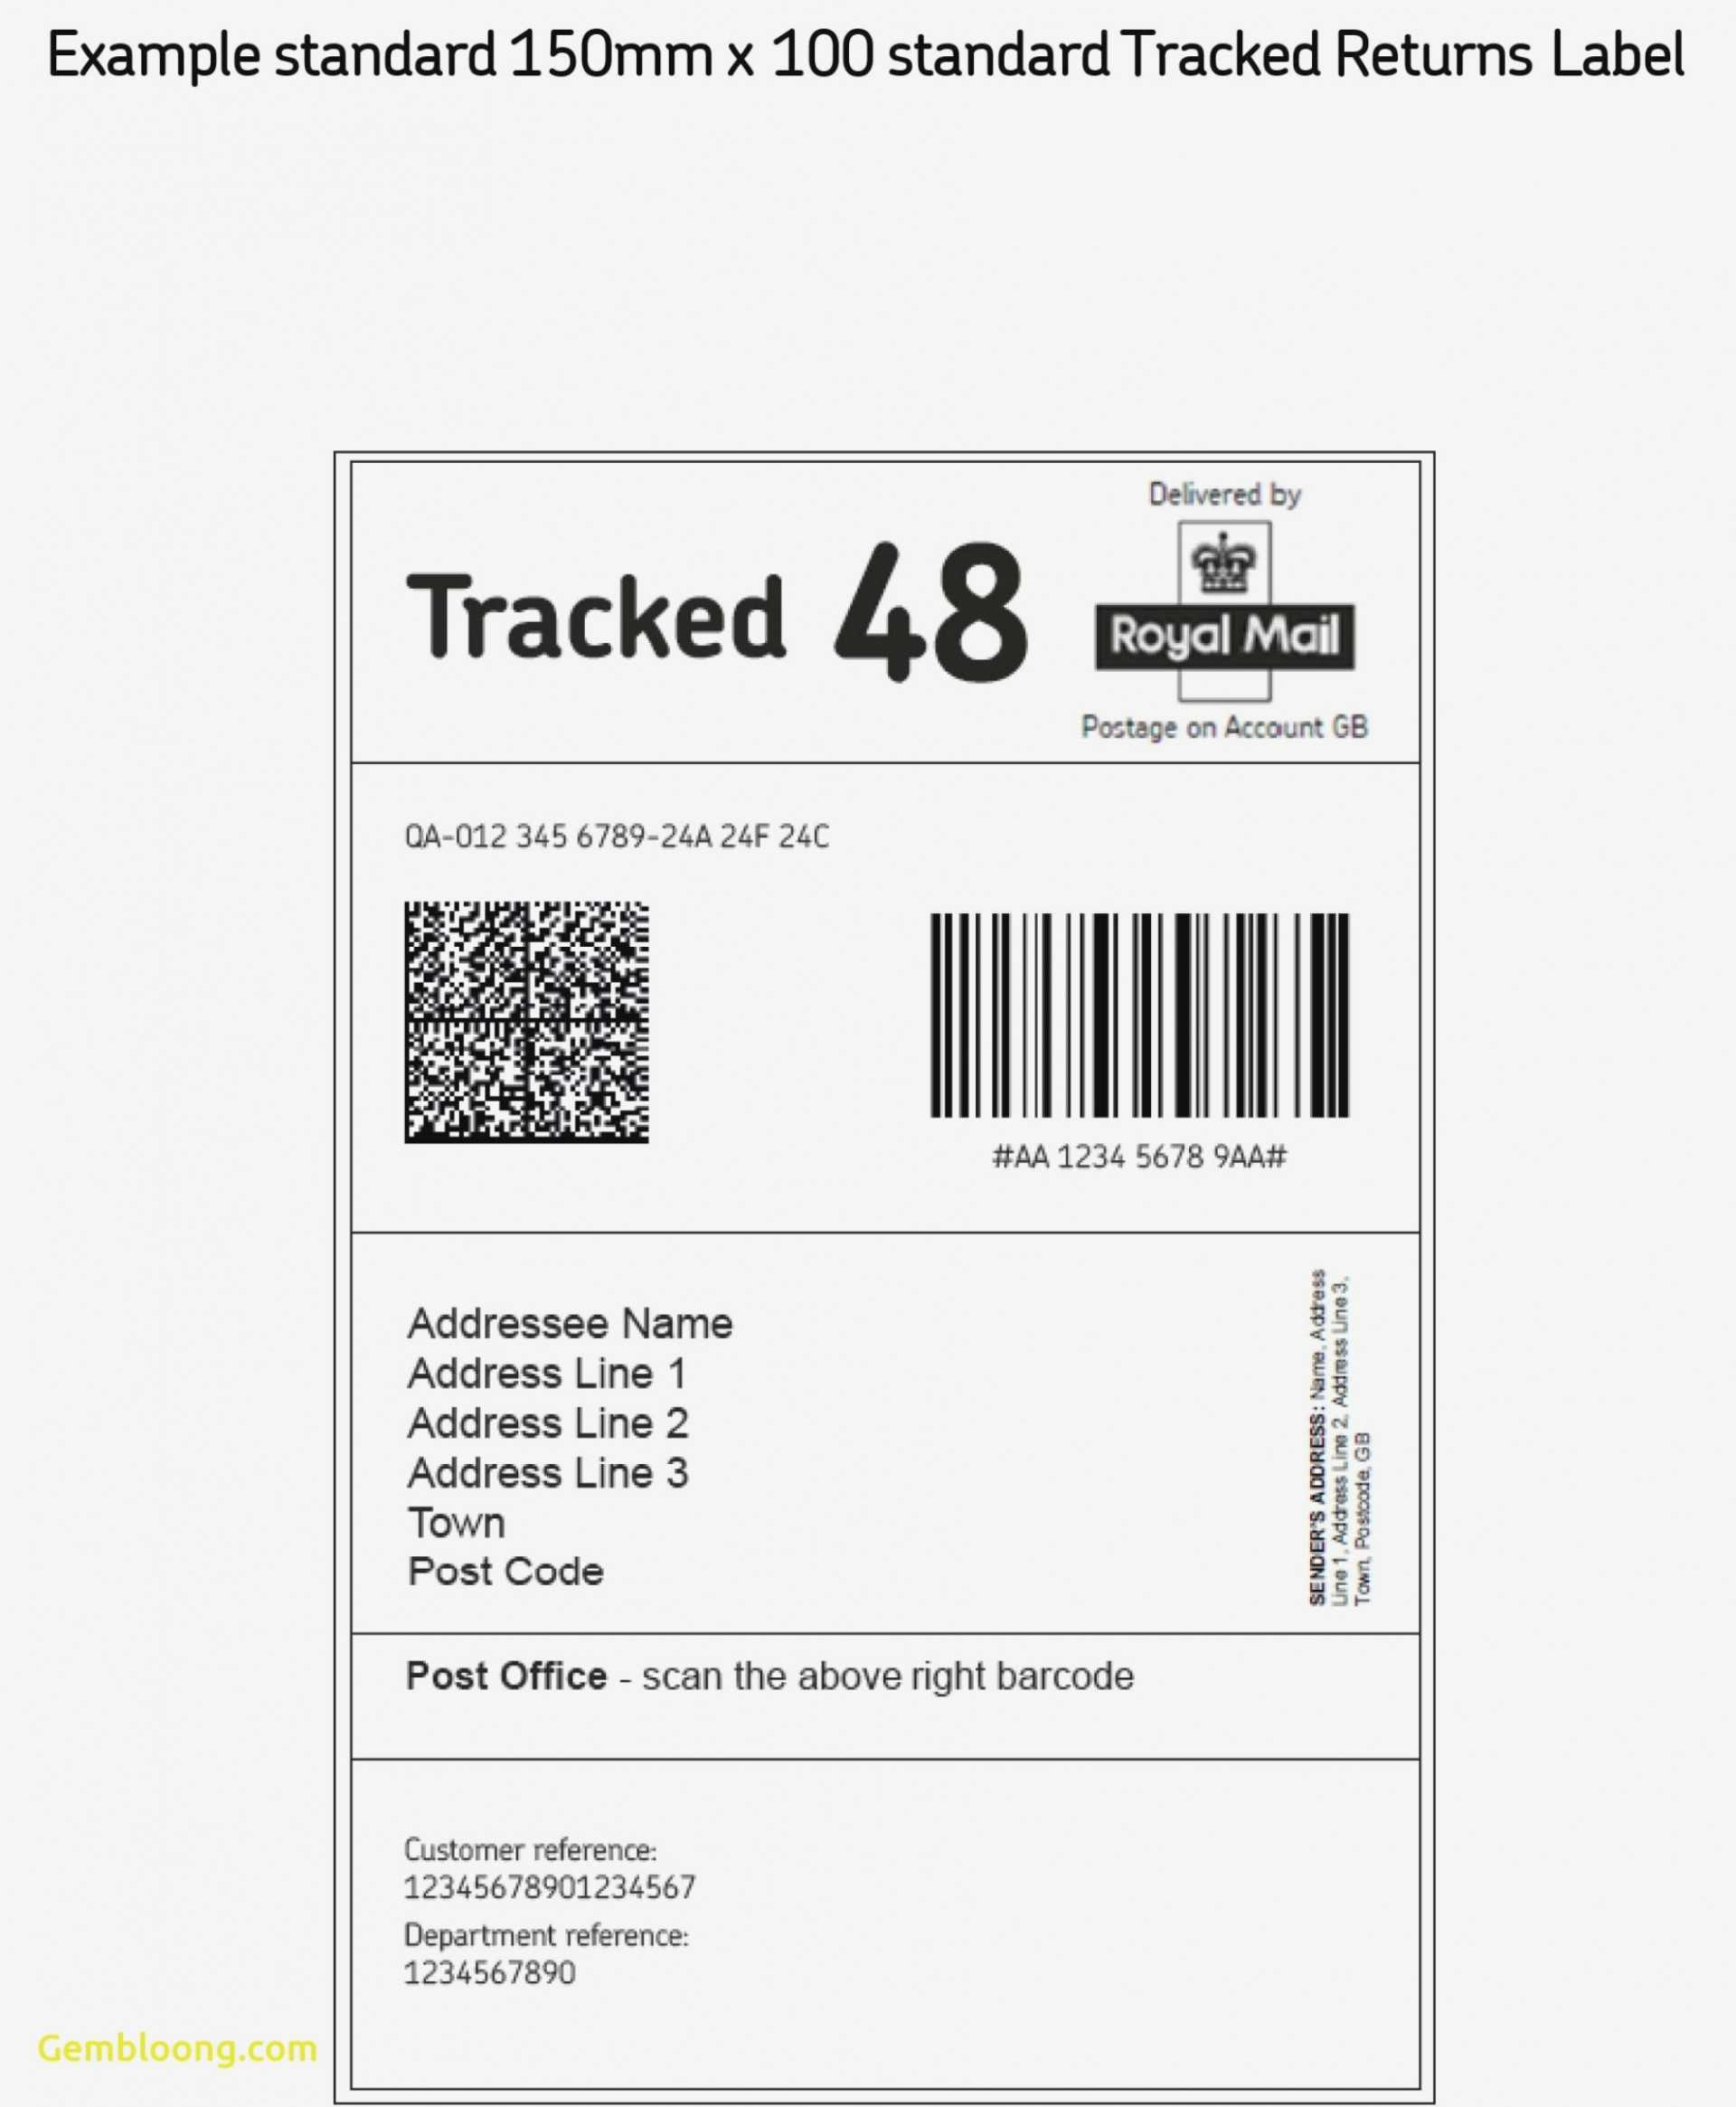 002 Free Online Label Templates How To Design Labels In Throughout Free Online Label Templates